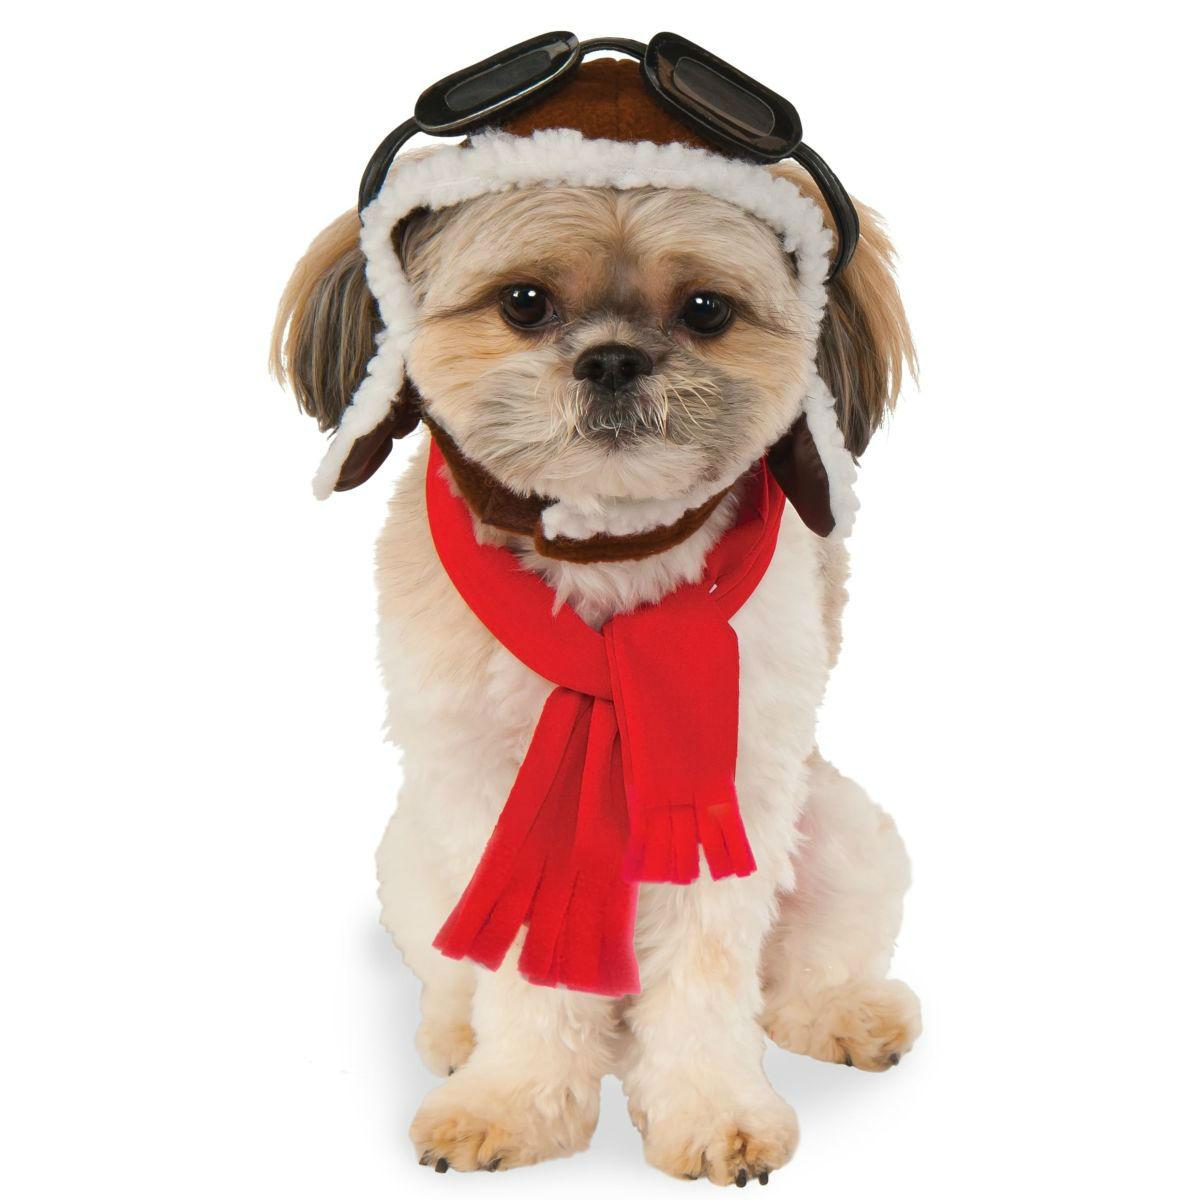 Aviator Scarf and Hat Dog Costume Set by Rubies